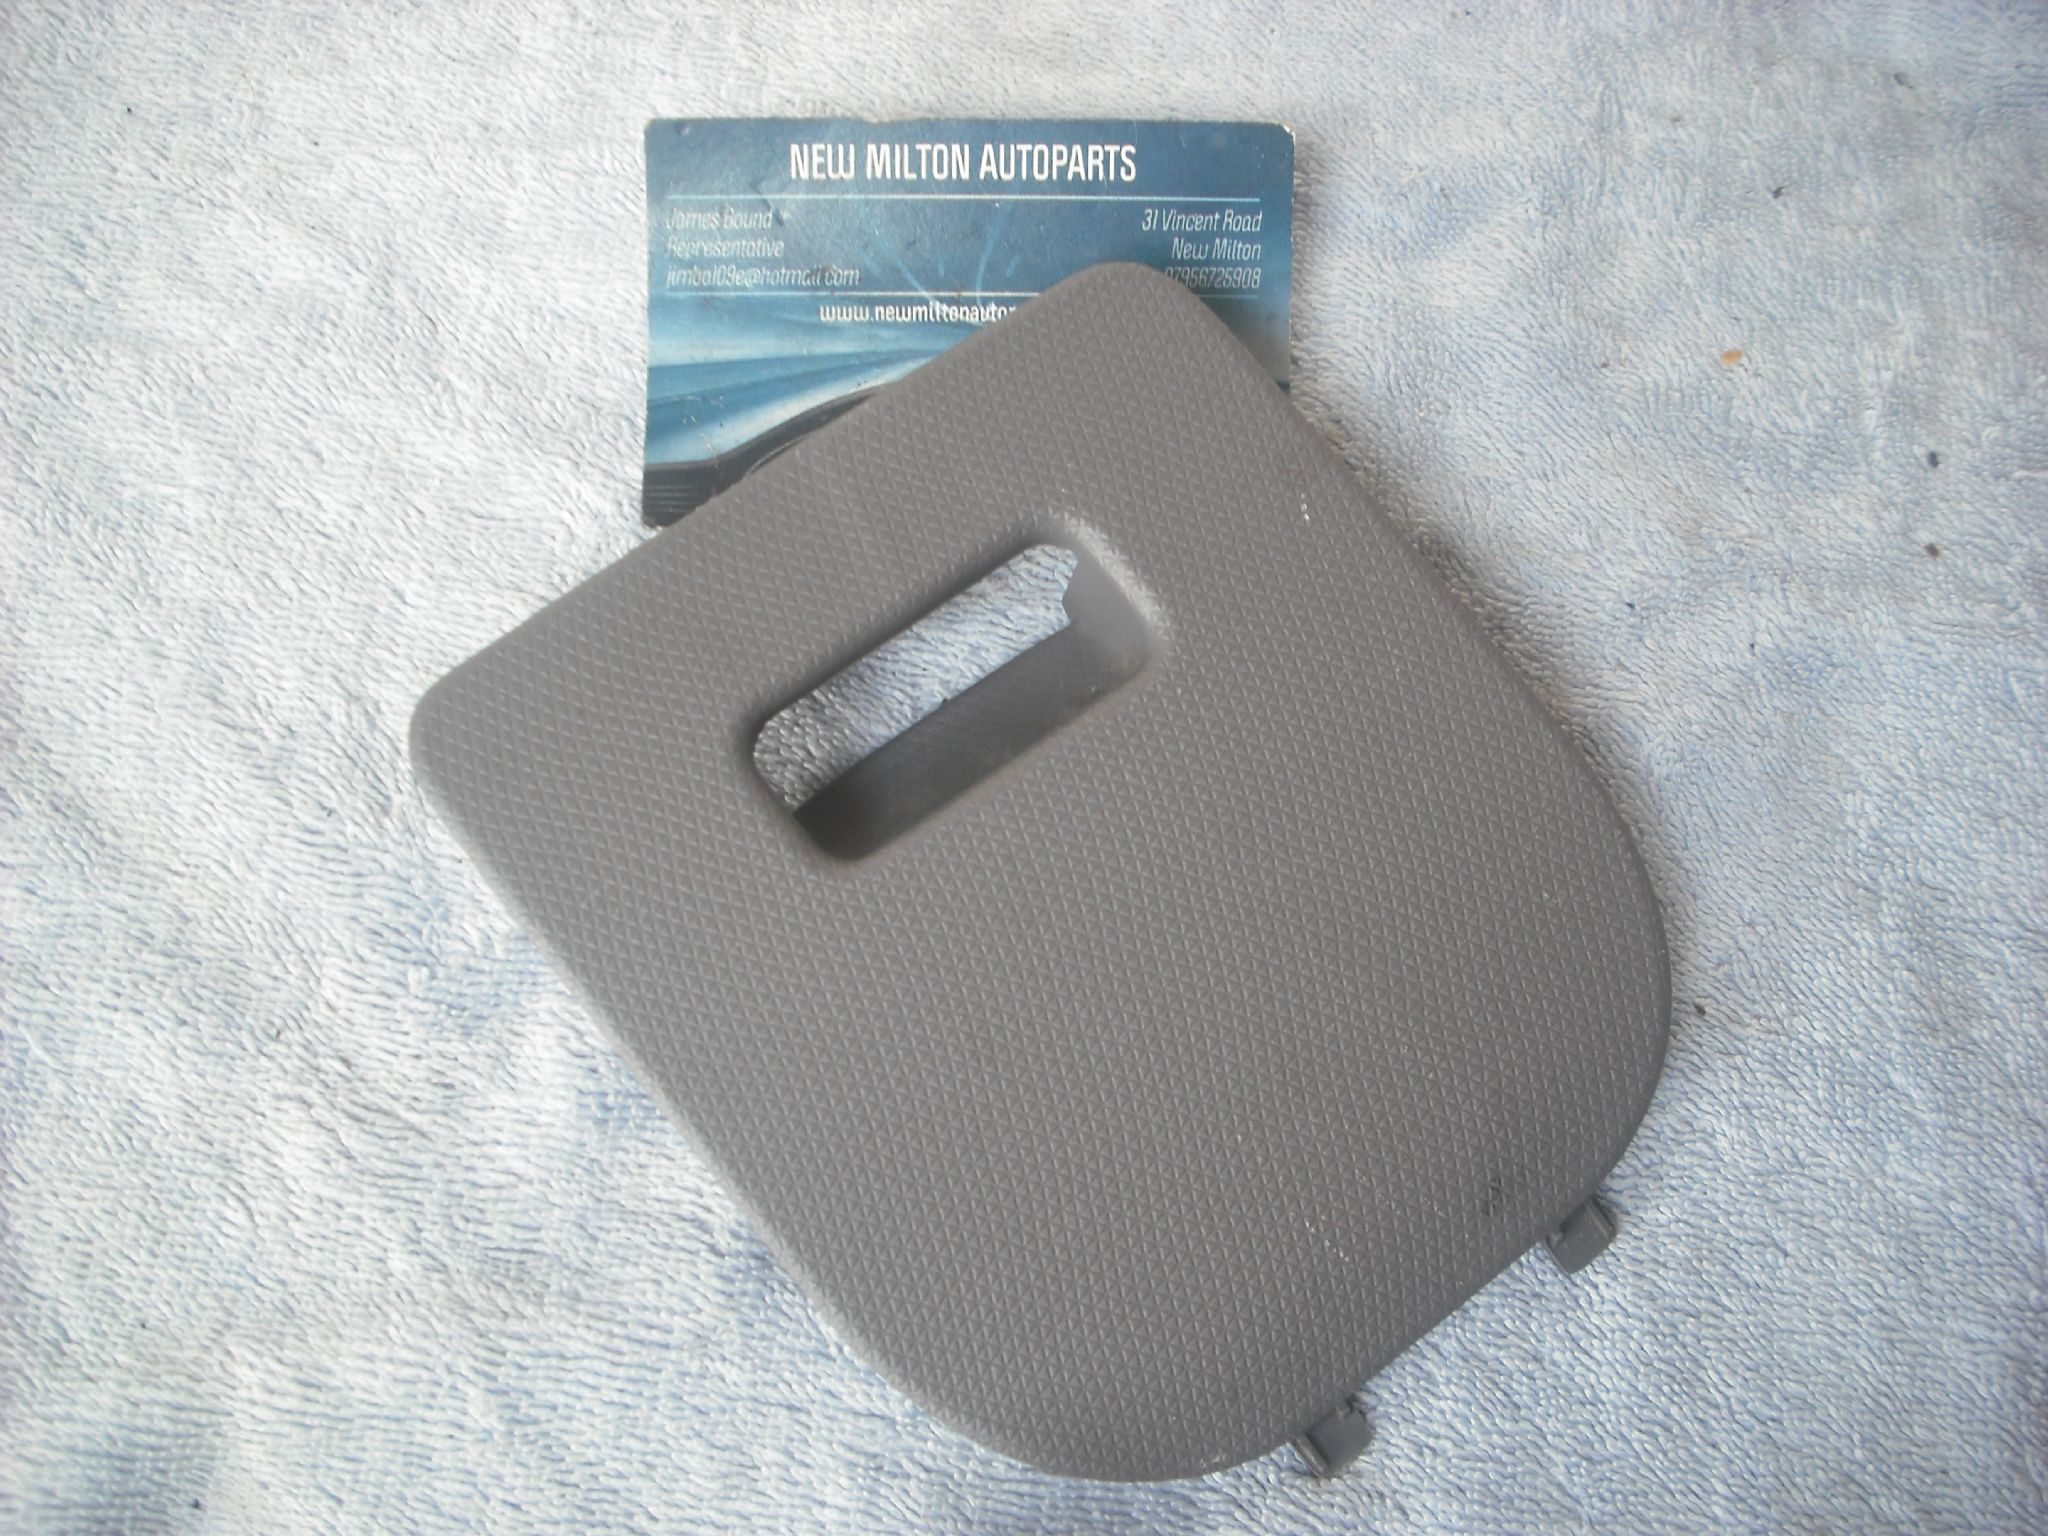 A Genuine Nissan Micra K12 2003 2007 Uk Drivers Side Dash Panel Fuse Box Cover Door Grey